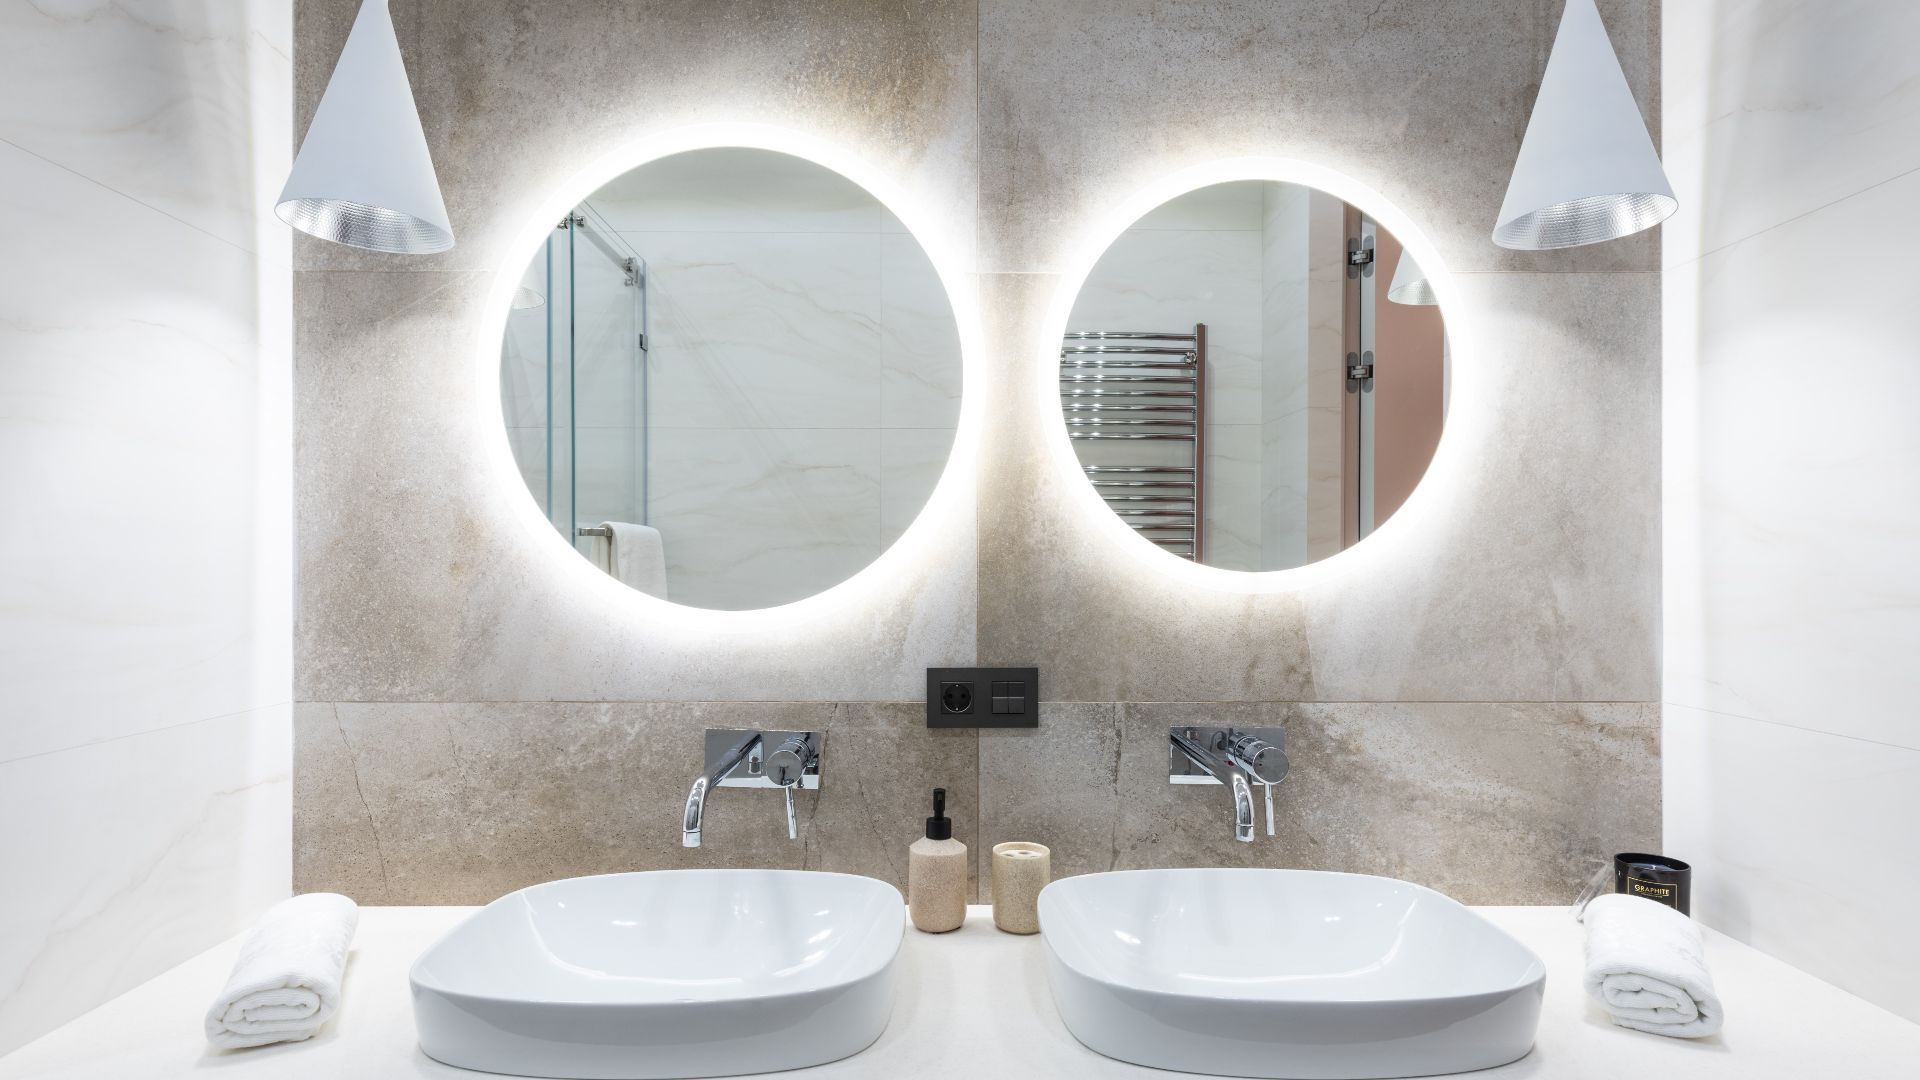 The bathroom furniture division of RG International Bathroom has been acquired by Roca Sanitario